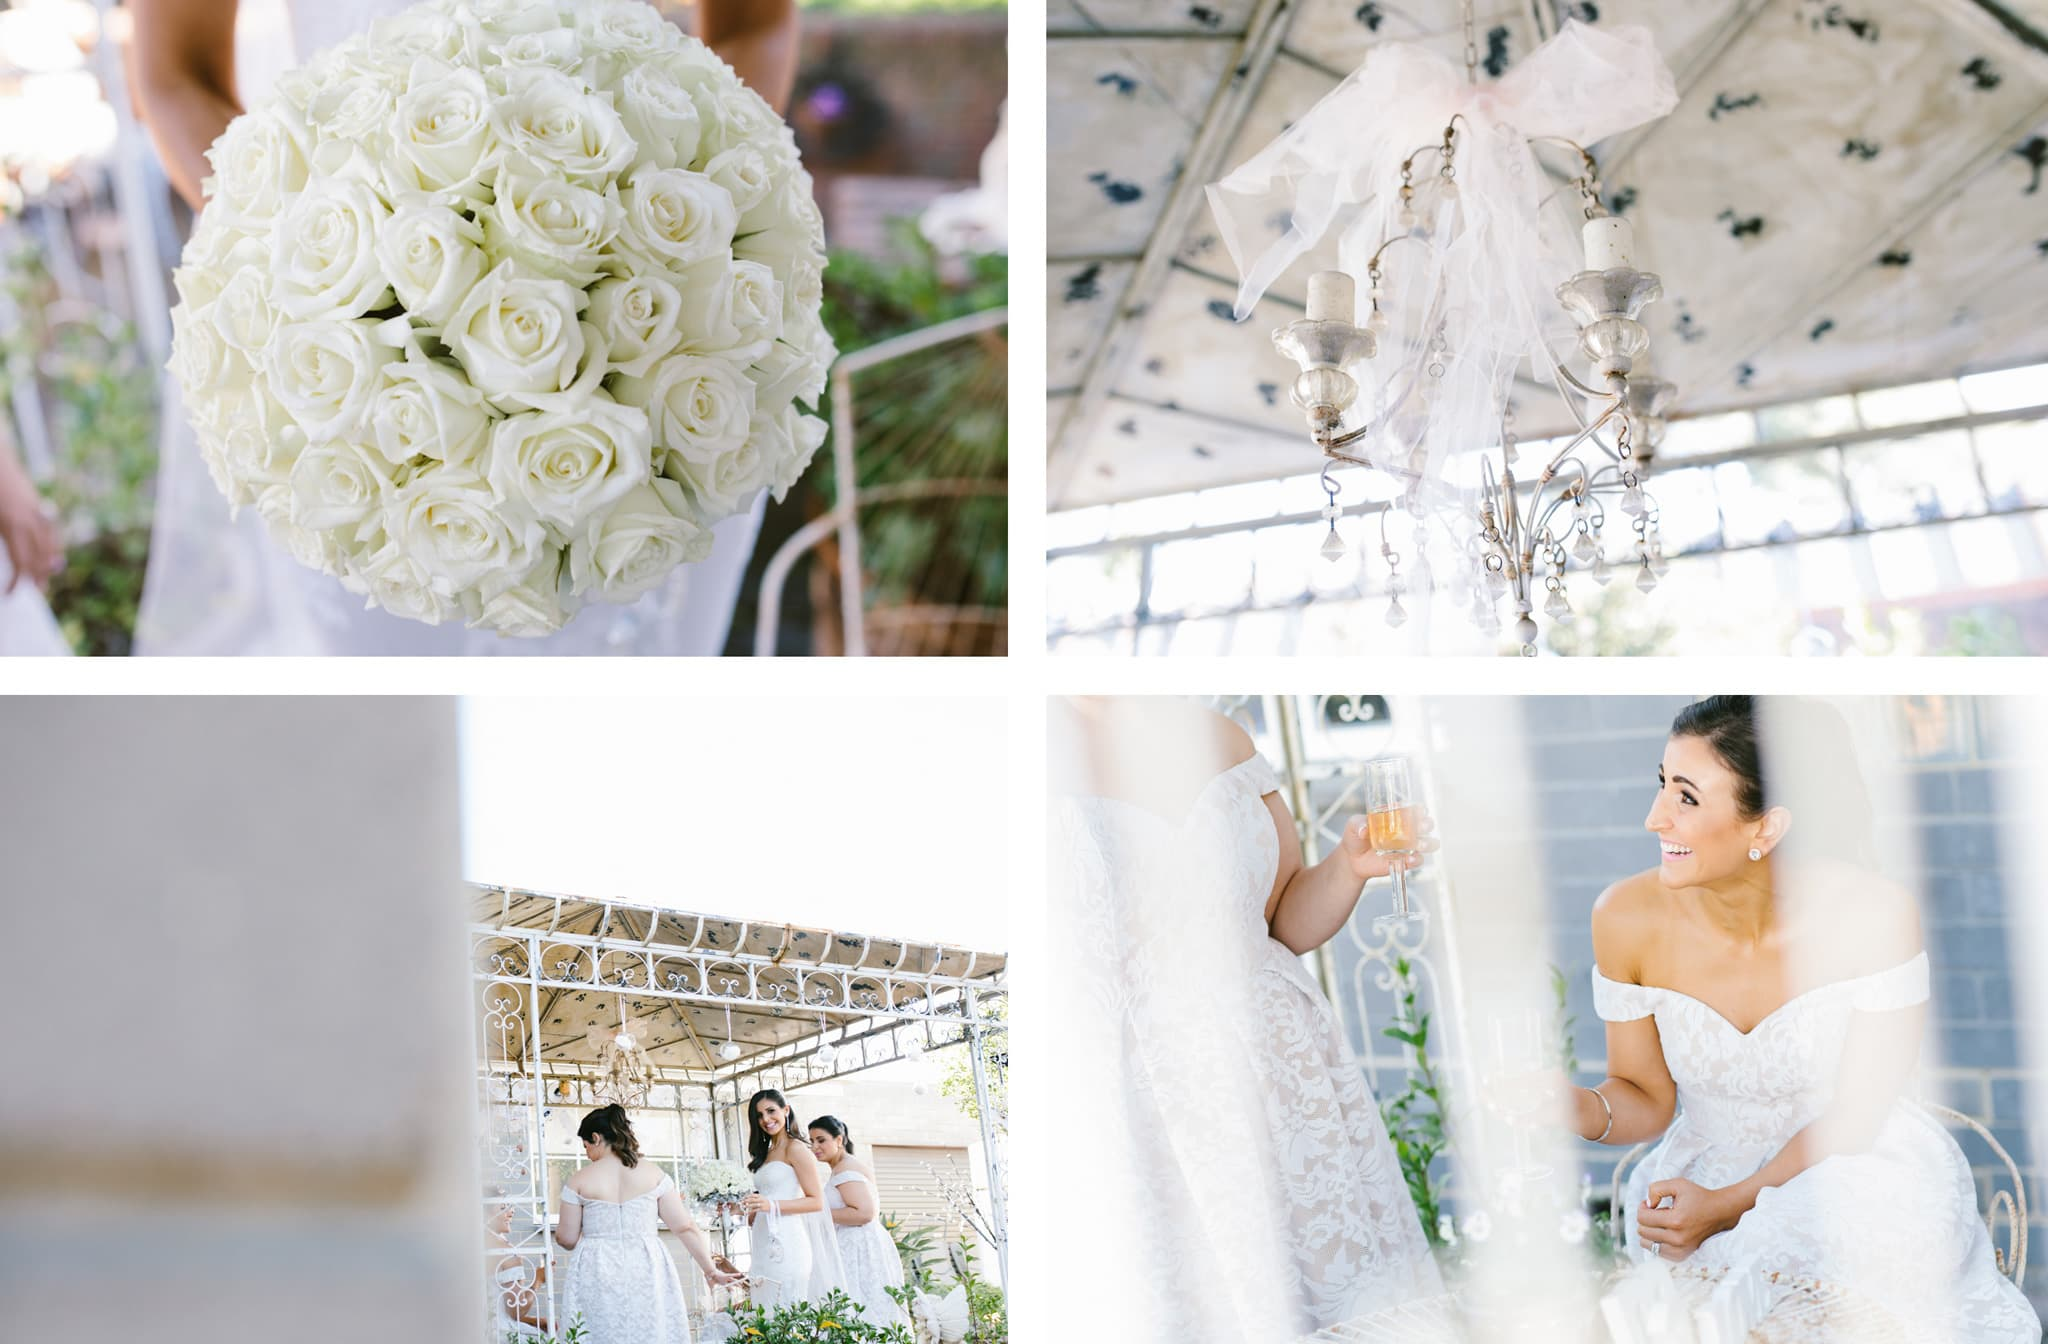 garden wedding photographer in melbourne - diy wedding in your own home - pergola - bride and bridesmaids